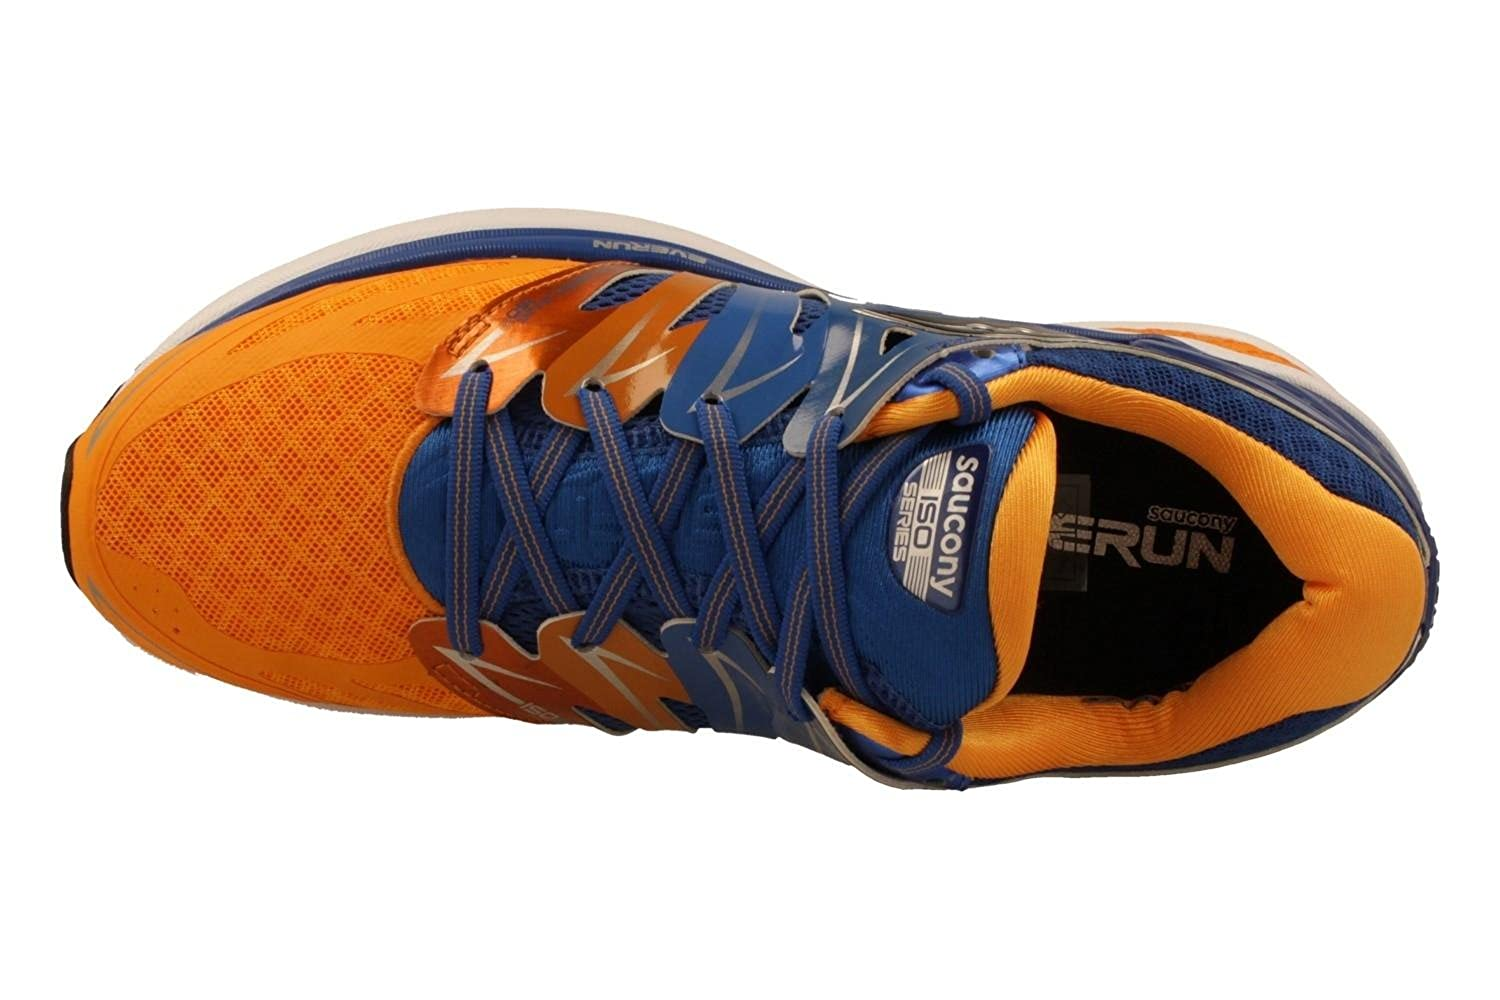 Saucony Hurricane Iso Iso Iso 2 Laufschuhe - AW16 a55088